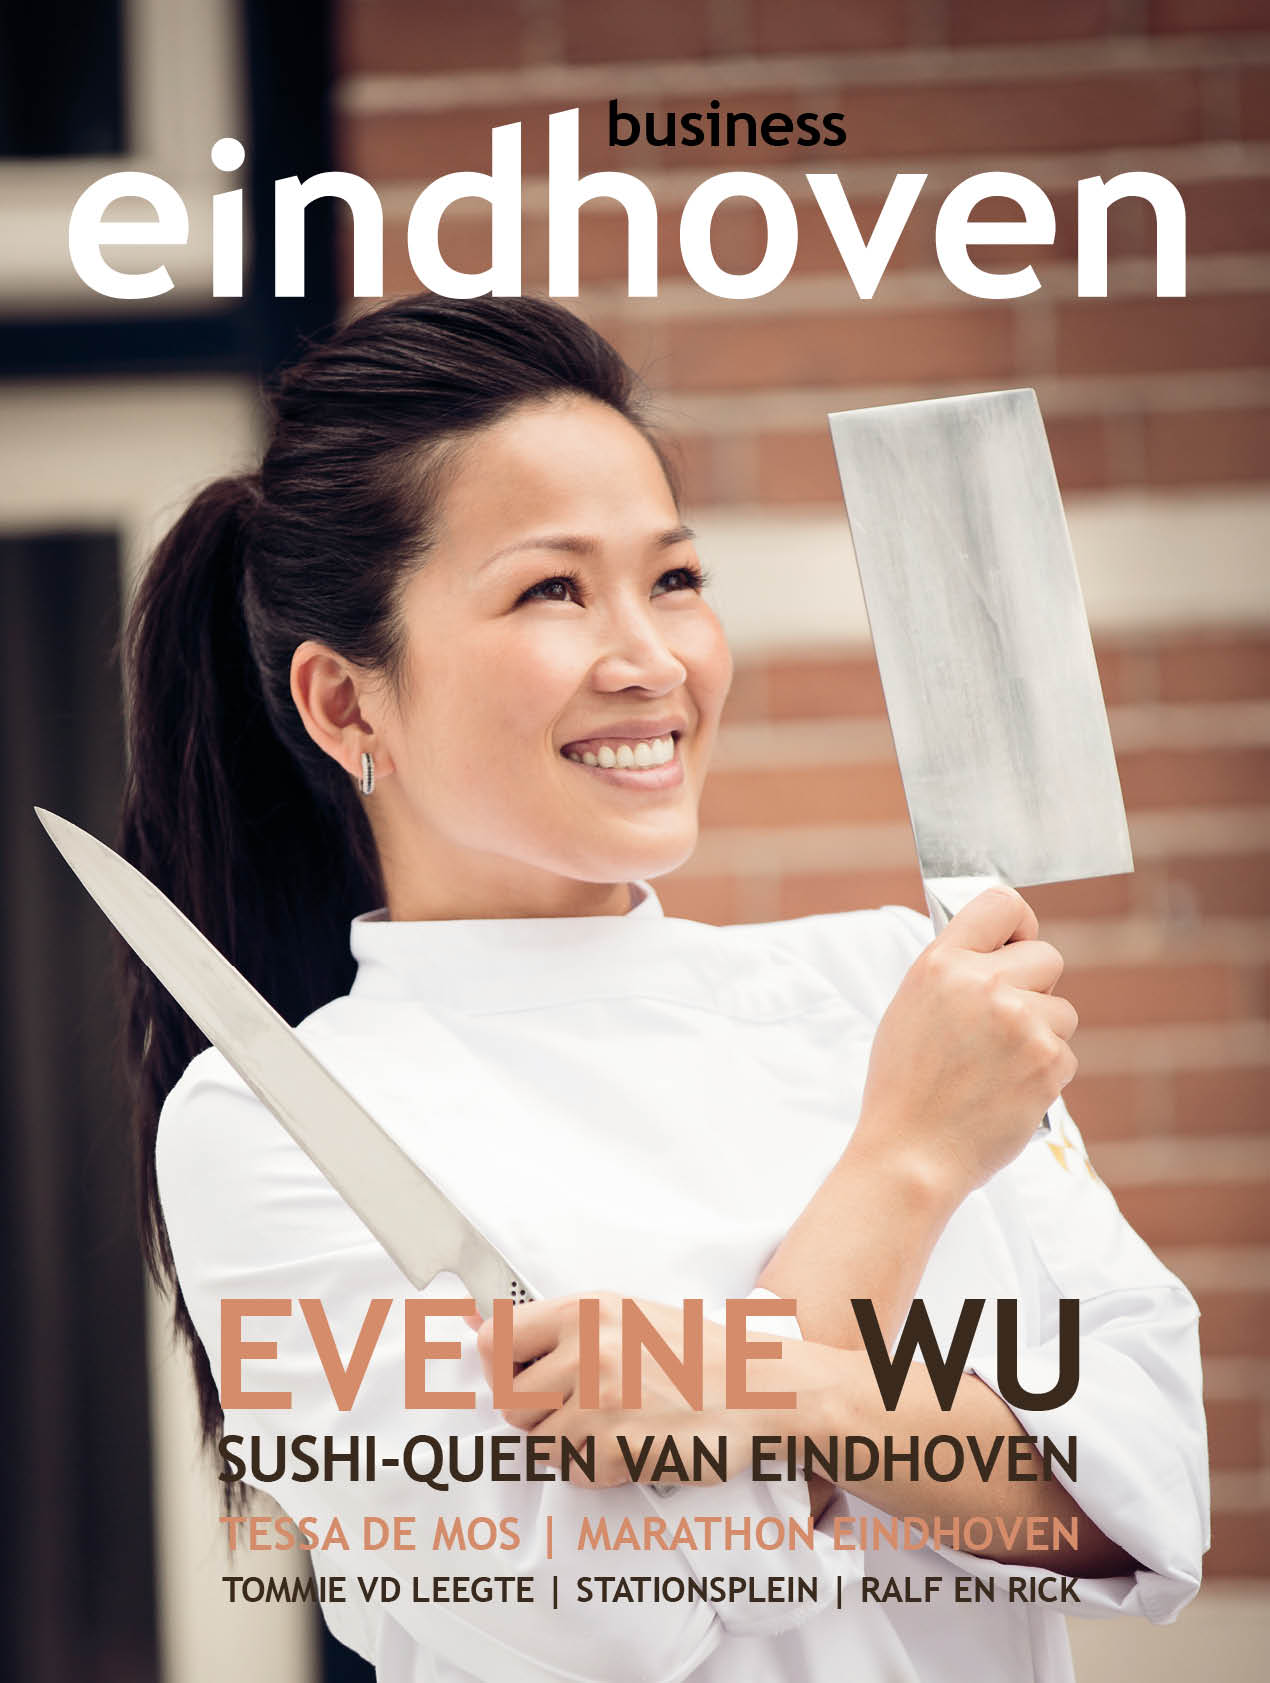 Eindhoven Business september 2012